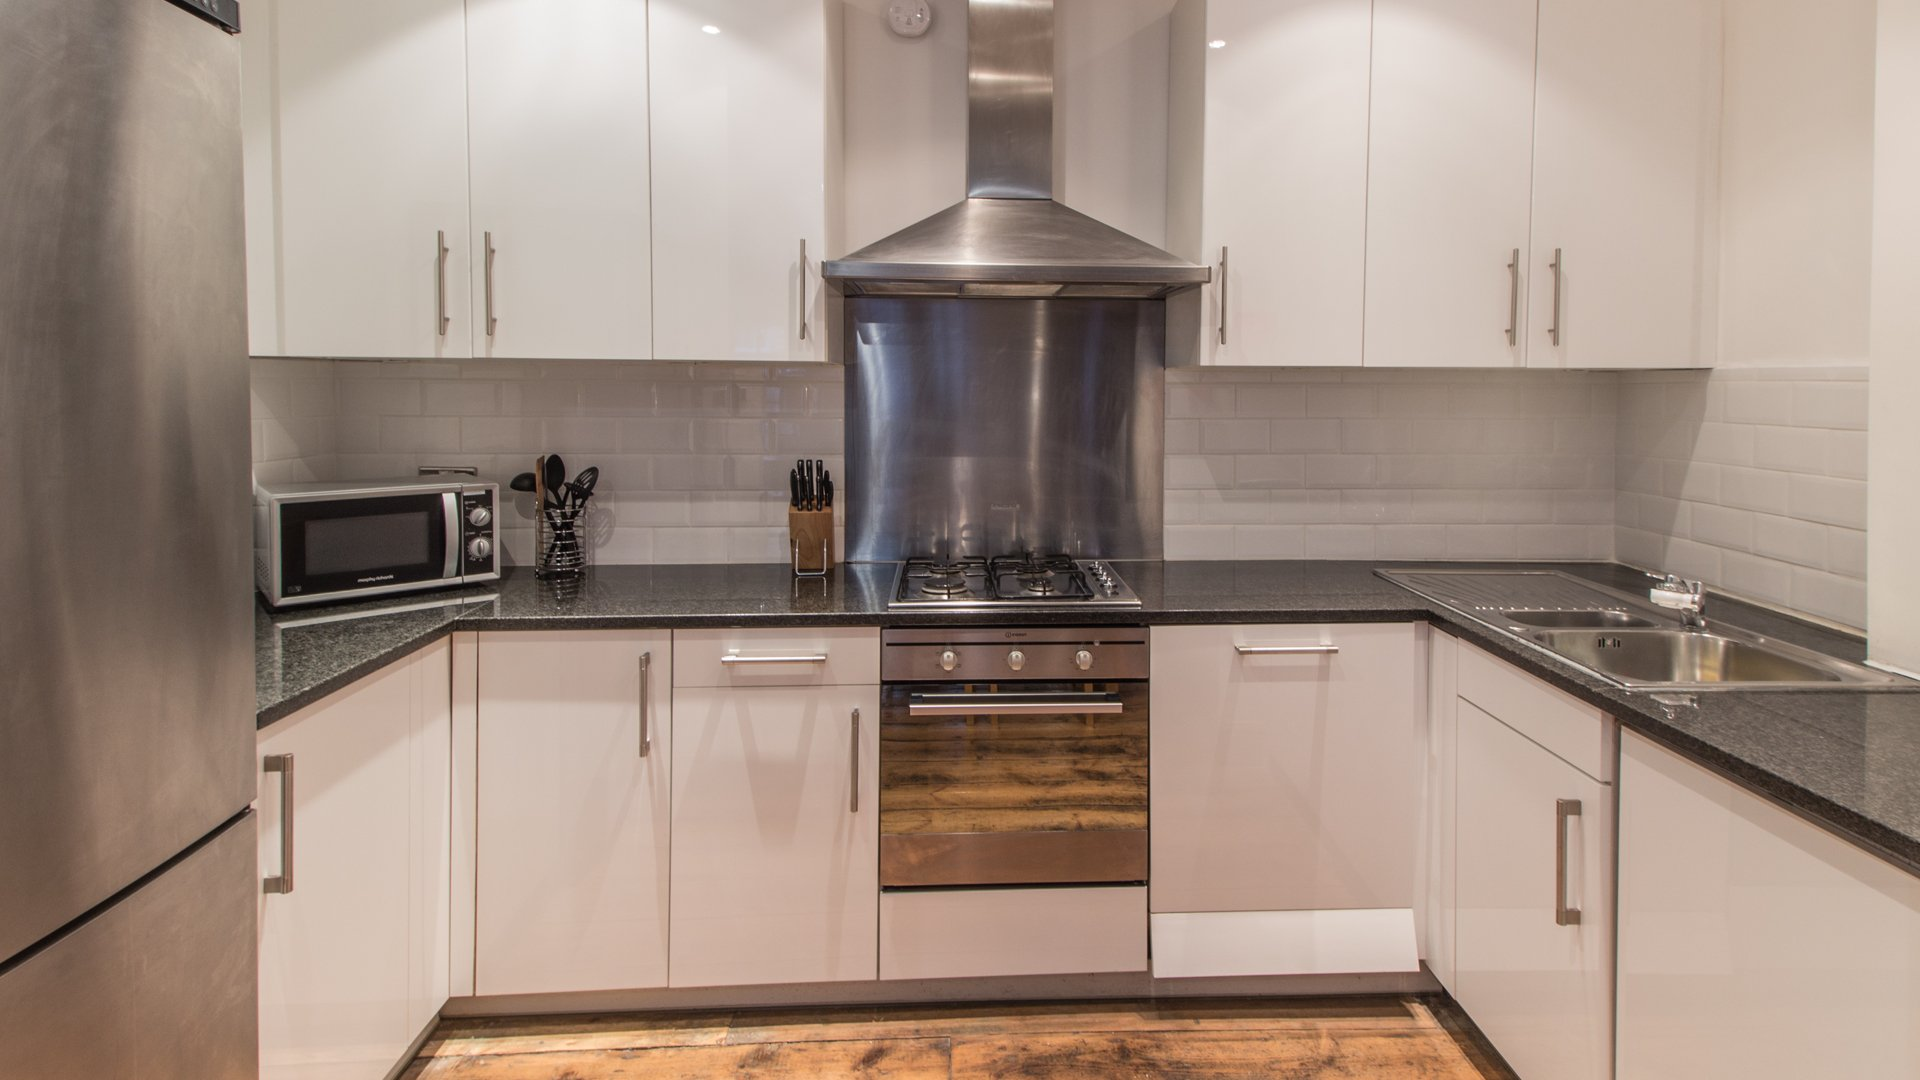 Serviced-Apartments-London-City---Farringdon-Lane-Apartments-|-Book-Serviced-Apartments-near-Farringdon-&-Barbican-now!-Best-Rates---No-Fees---Free-Wifi